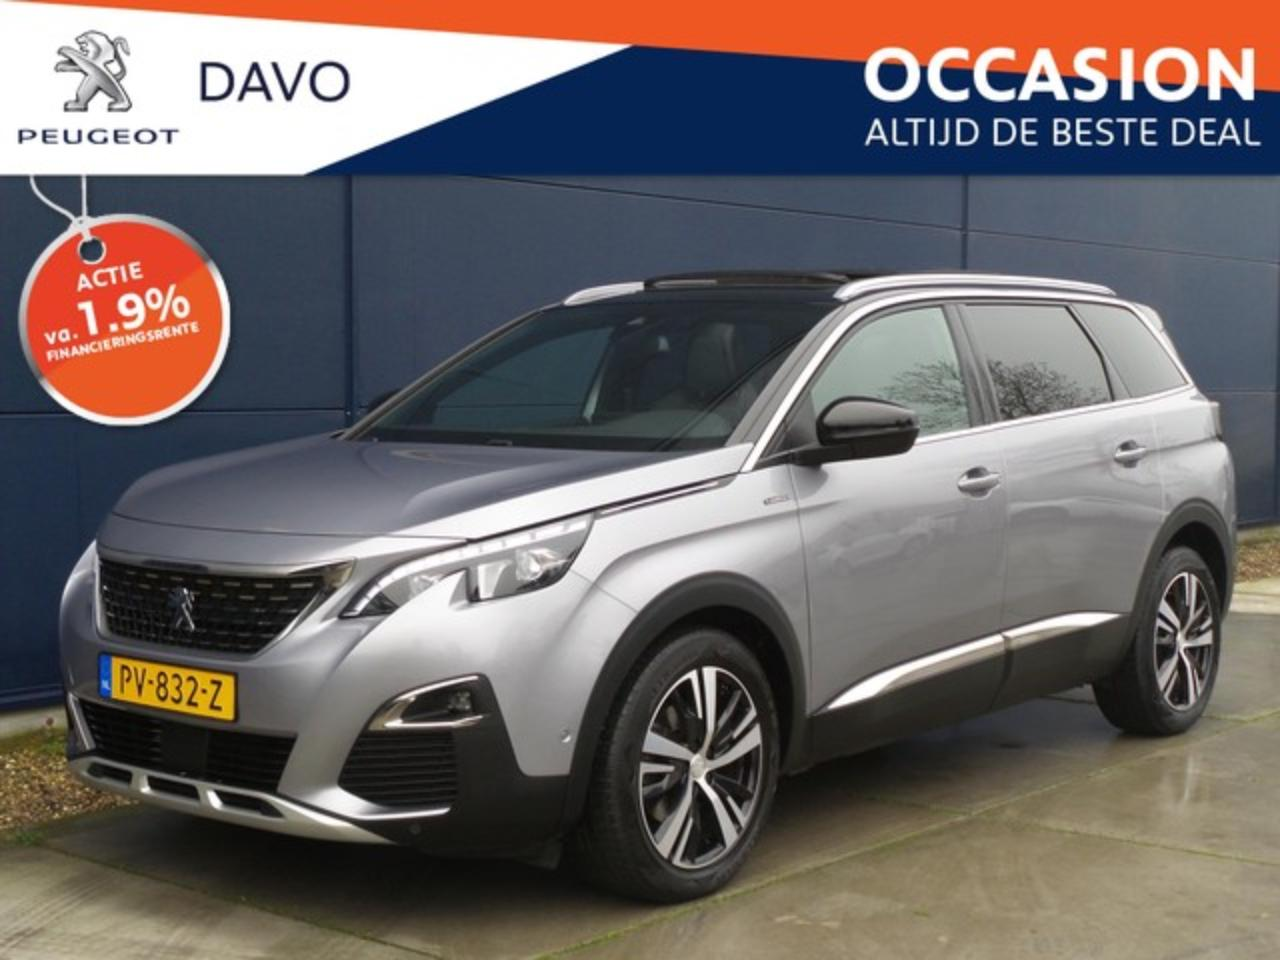 Peugeot 5008 2.0 BlueHDi 150pk Blue Lease GT-Line Panorama I To